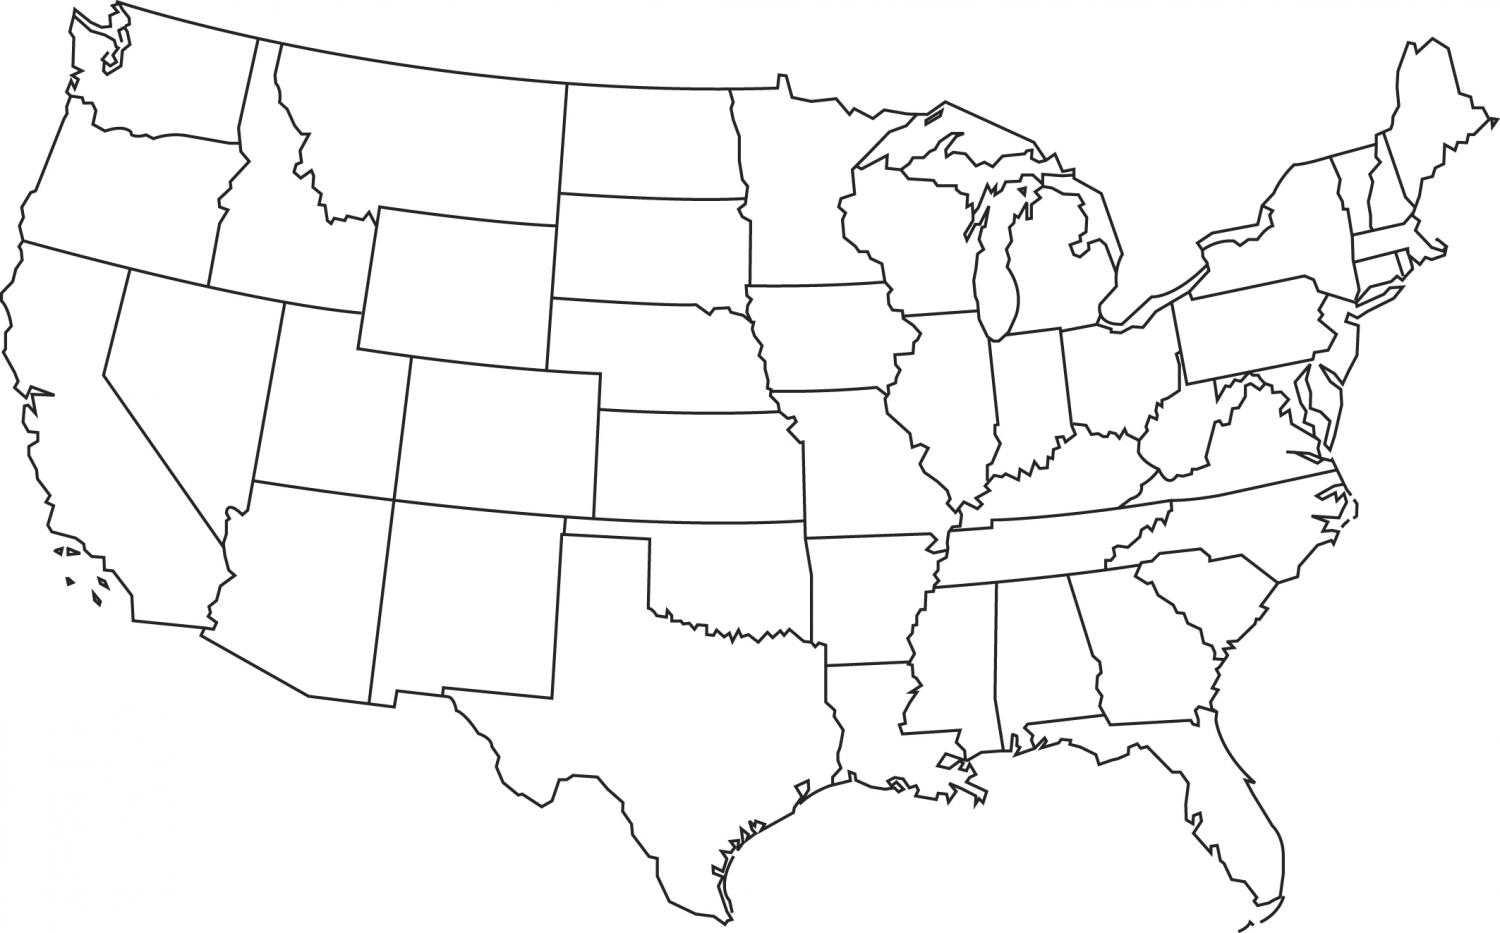 Blank Map Of The Northeast Region Of The Usa Blank Map Of The CDC - South us states fill in map